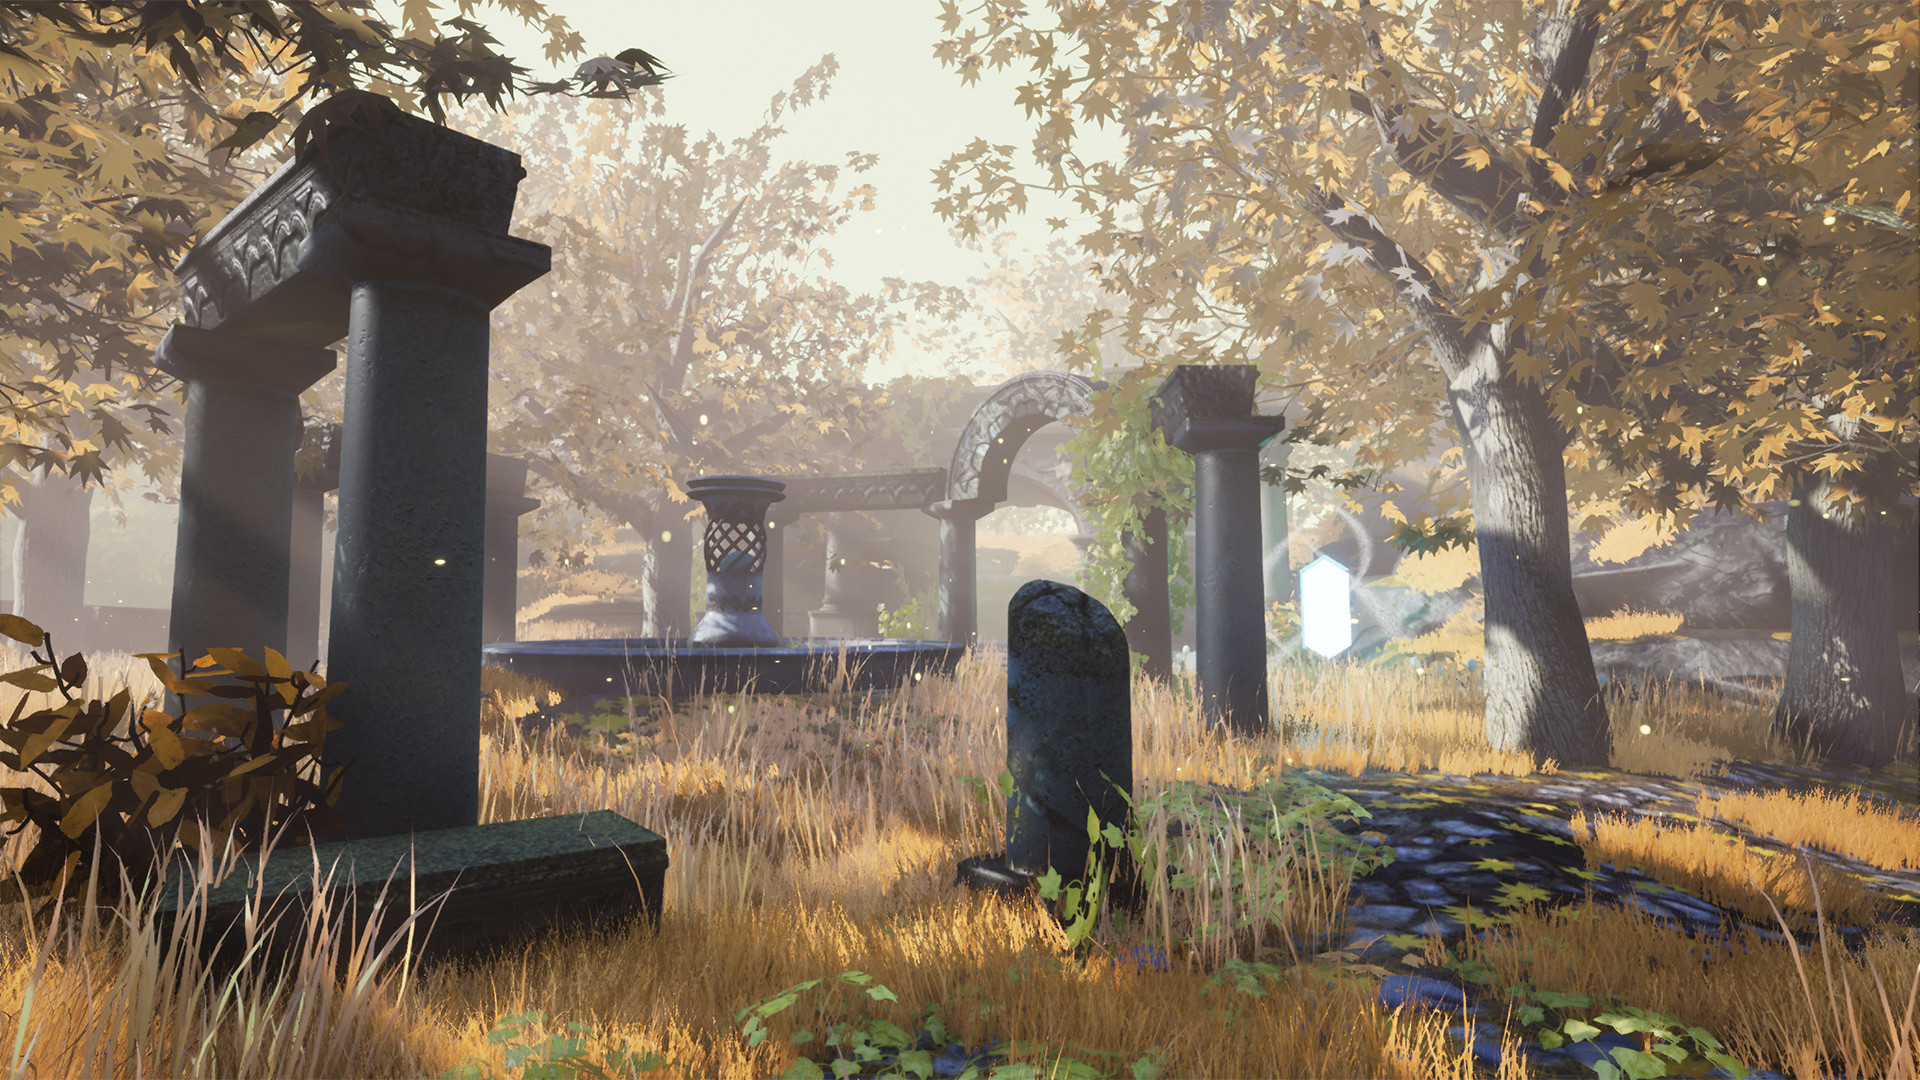 The ground is actually a landscape created in Unreal 4. Landscapes struggle with shadow resolution so I ended up using some shadow decals for the trees to cast sharp leaf shadows.